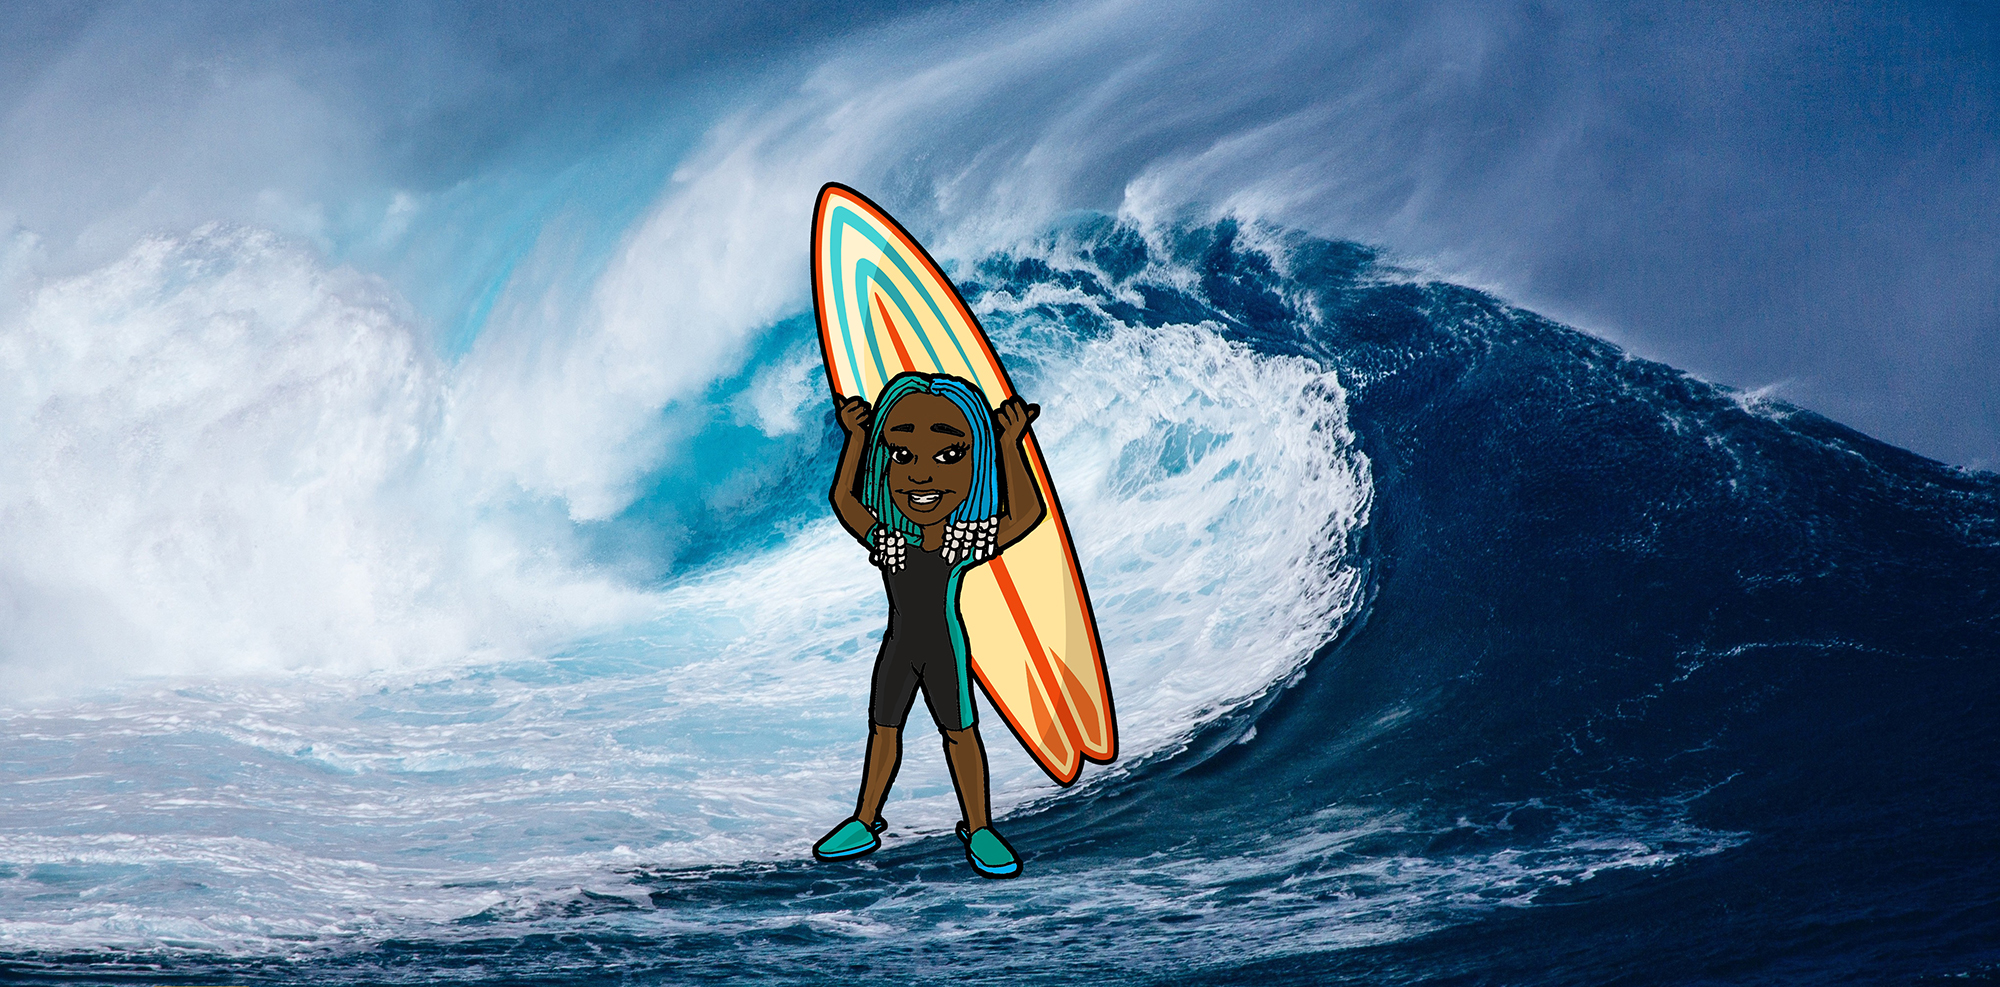 Black girl with surfboard cartoon in front of a photo of a wave